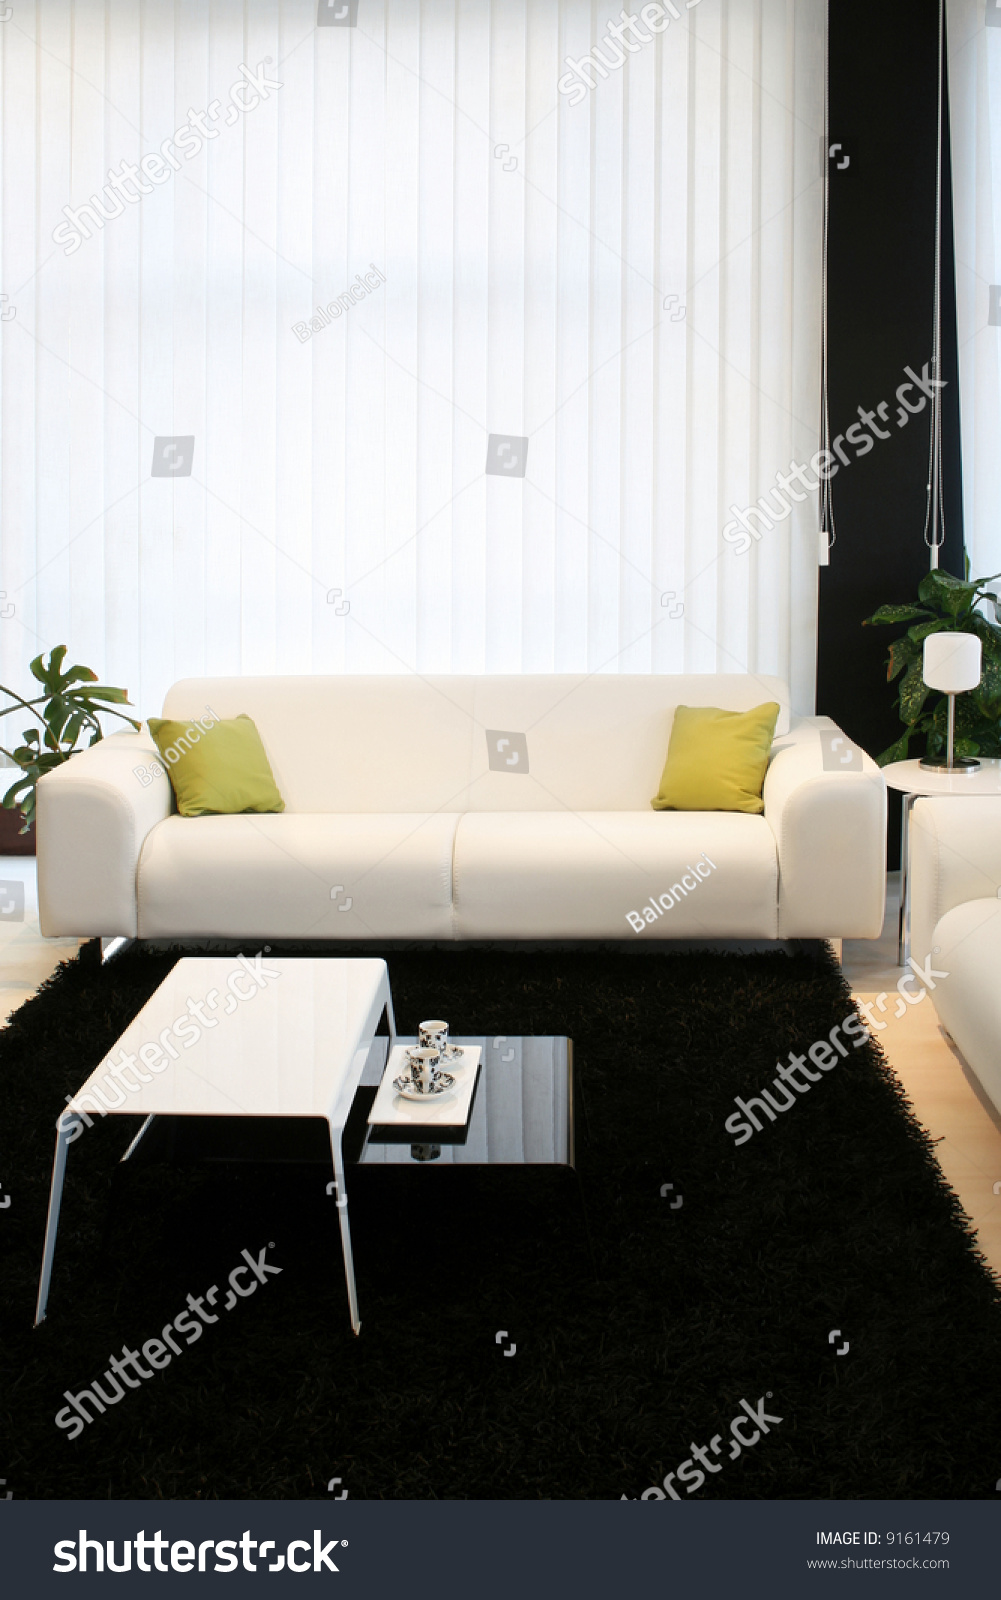 living room with white sofa and black carpet stock photo 9161479